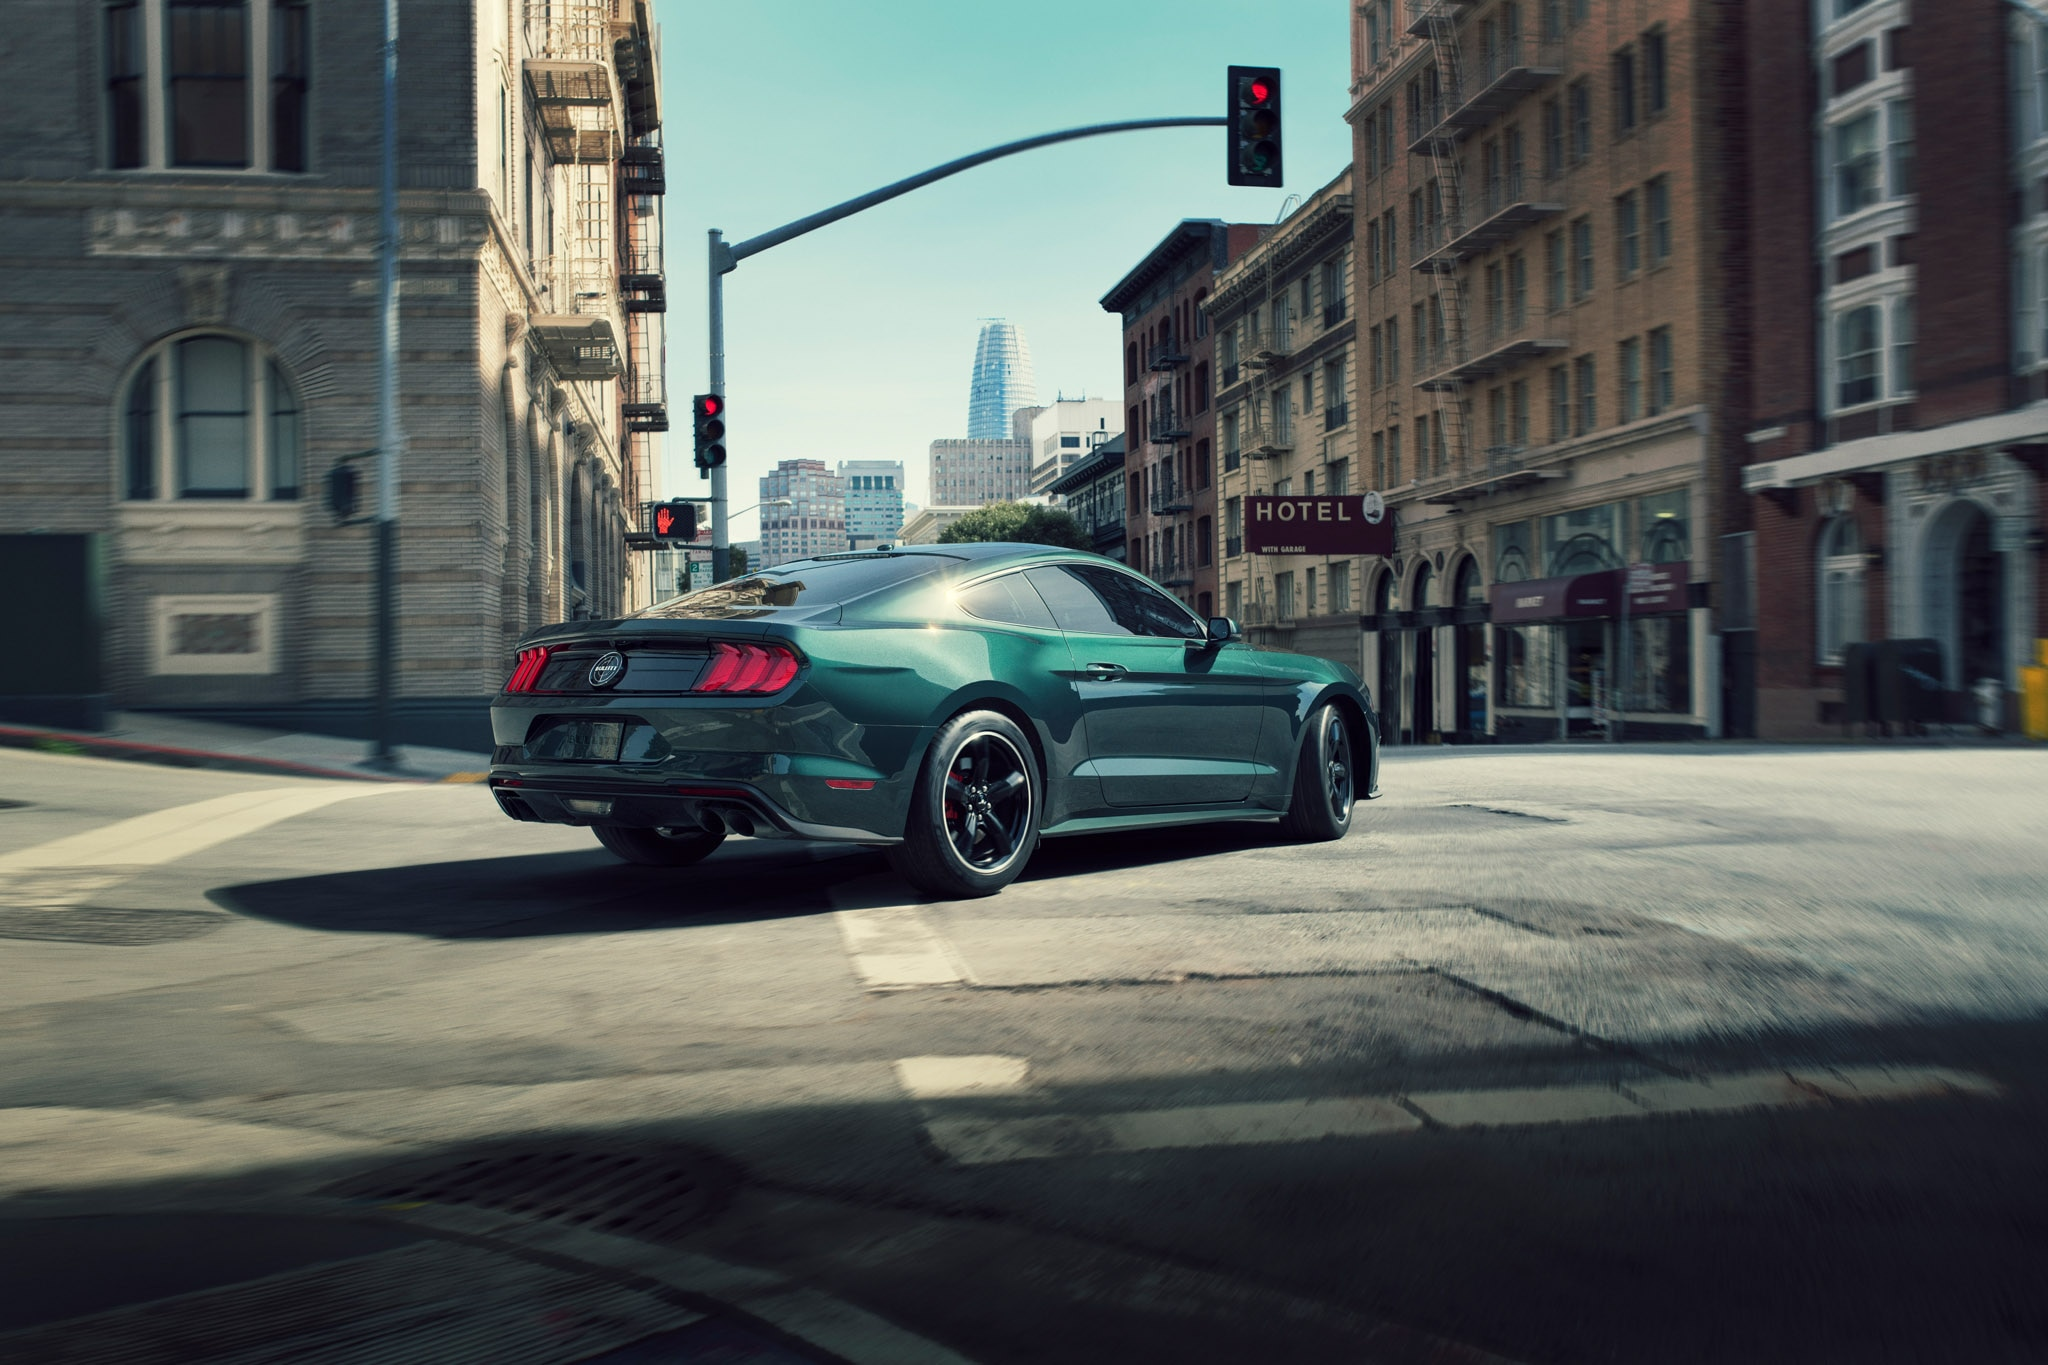 2019 Mustang Bullitt San Francisco Photography 663